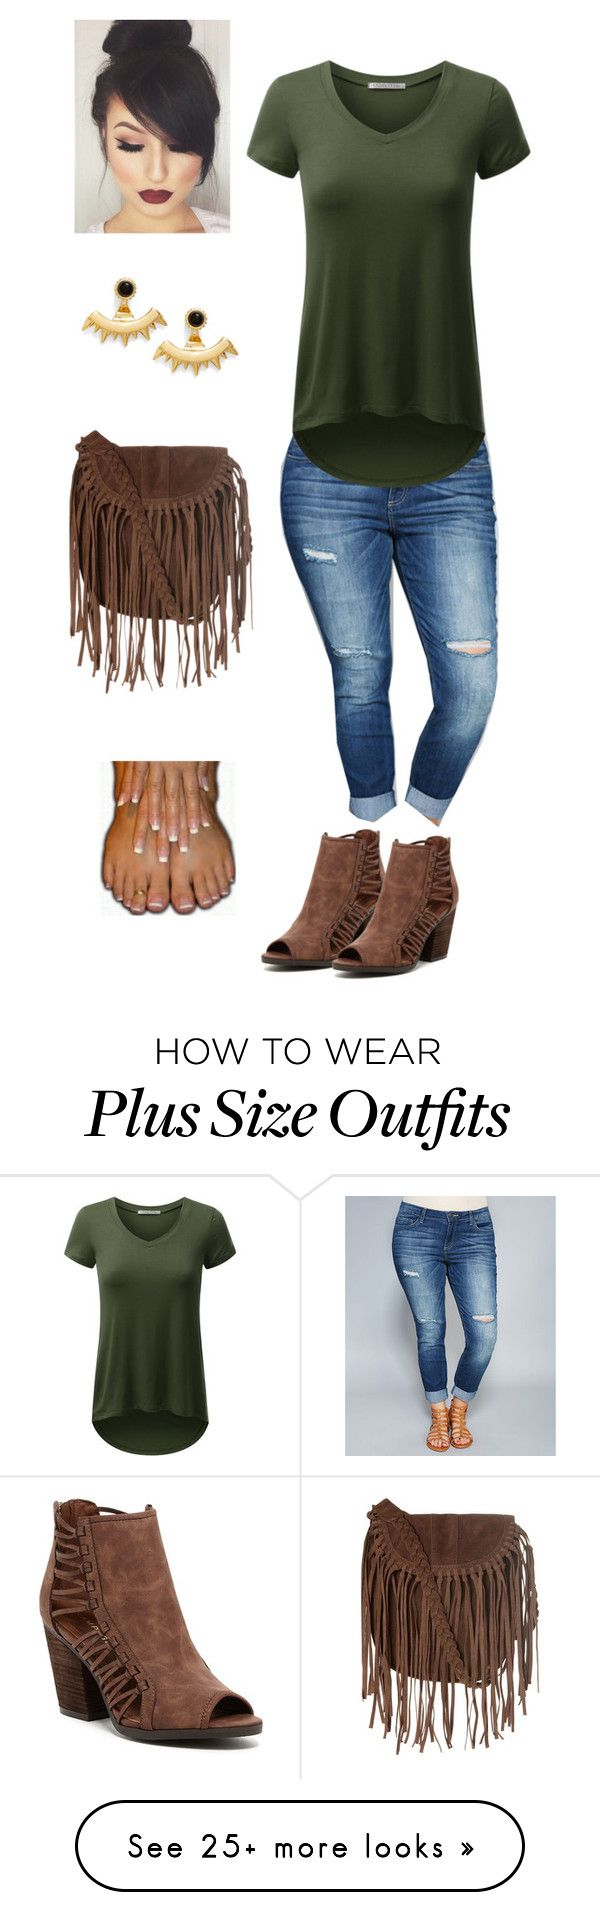 best wearables images on pinterest casual wear fall fashion